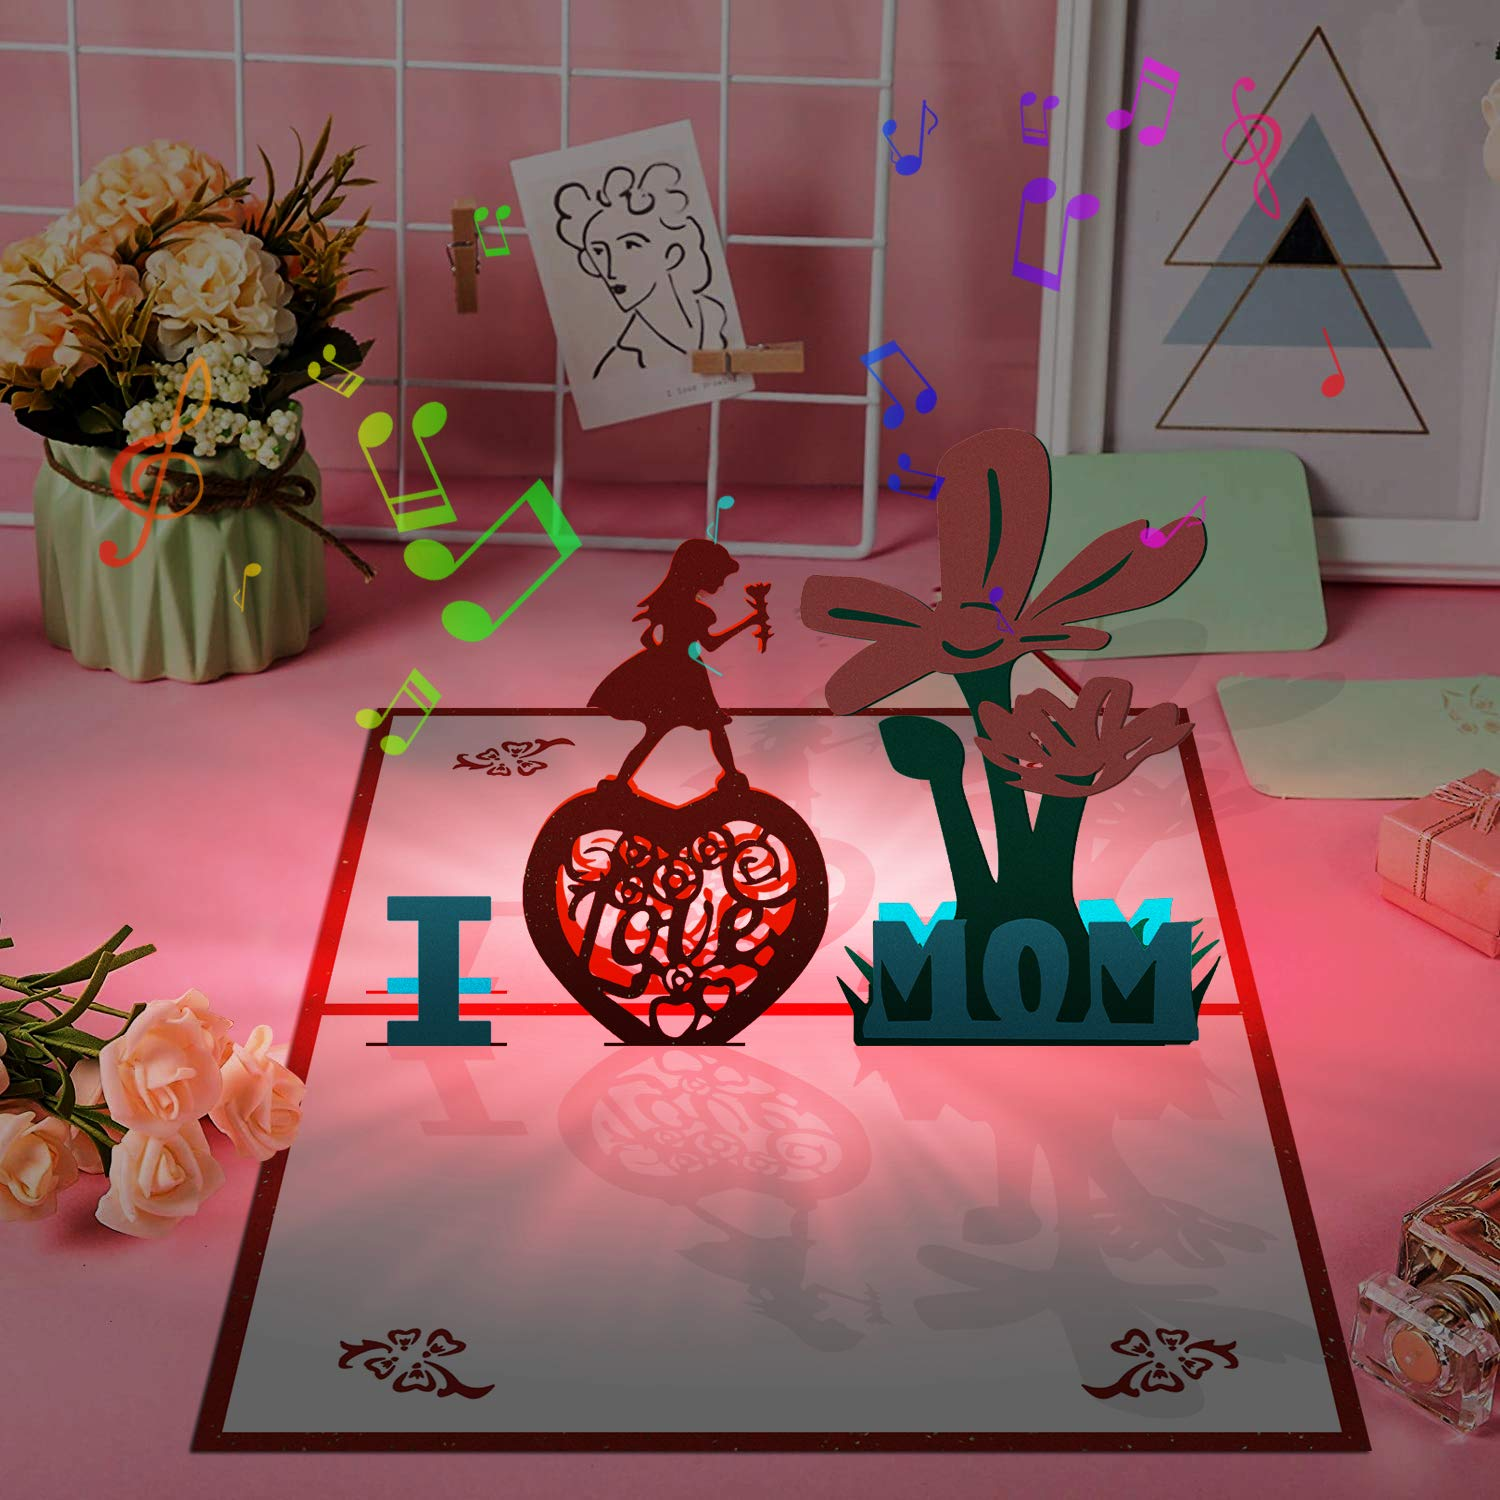 3D Pop Up Card with Lights and Music Greeting Cards for Mothers